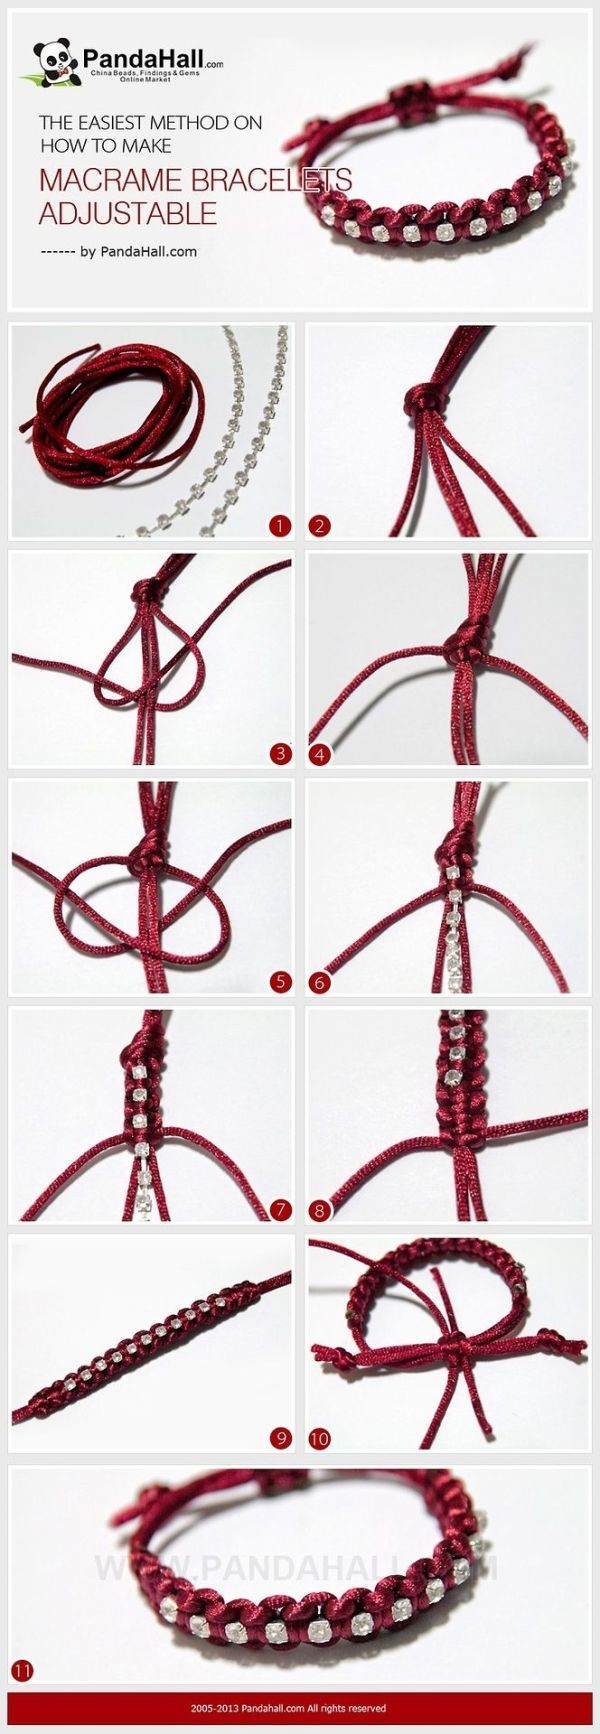 Jewelry Making IdeaHow to Make Adjustable Macrame Bracelets It is another bracelet making tutorial, at meanwhile, I will emphasize the subject about how to make macrame bracelets adjustable in simple way again. Especially for those who learn to knot for just several days, I recomend this. Want to learn it? Click here to check the detailed instructions on PandaHall.com. by meredith